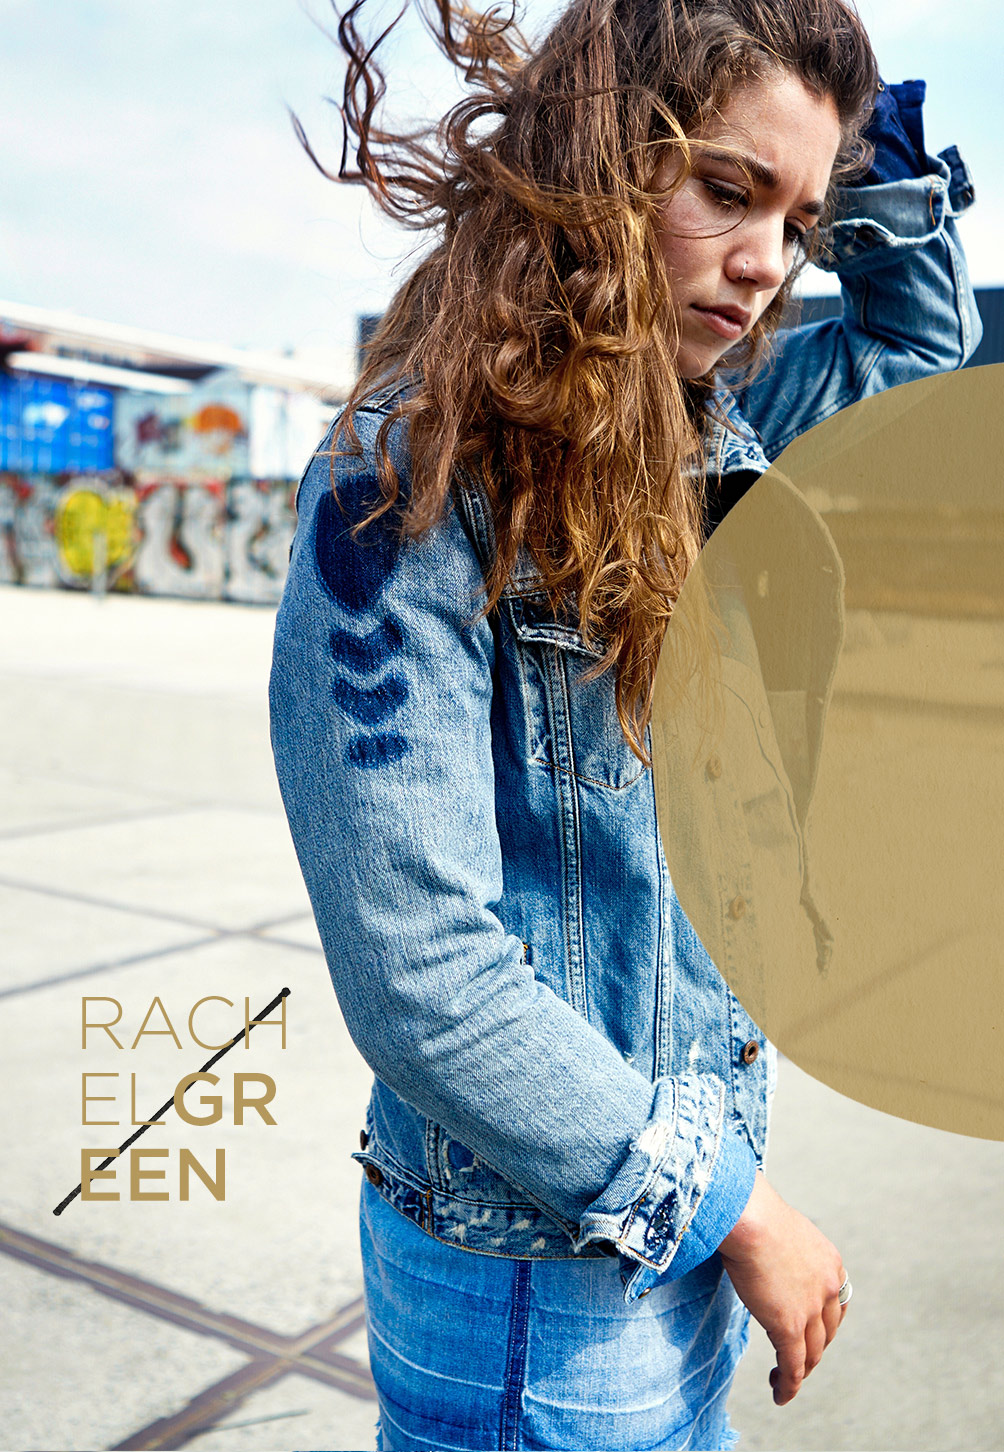 Model wearing our amsterdam blauw denim collection